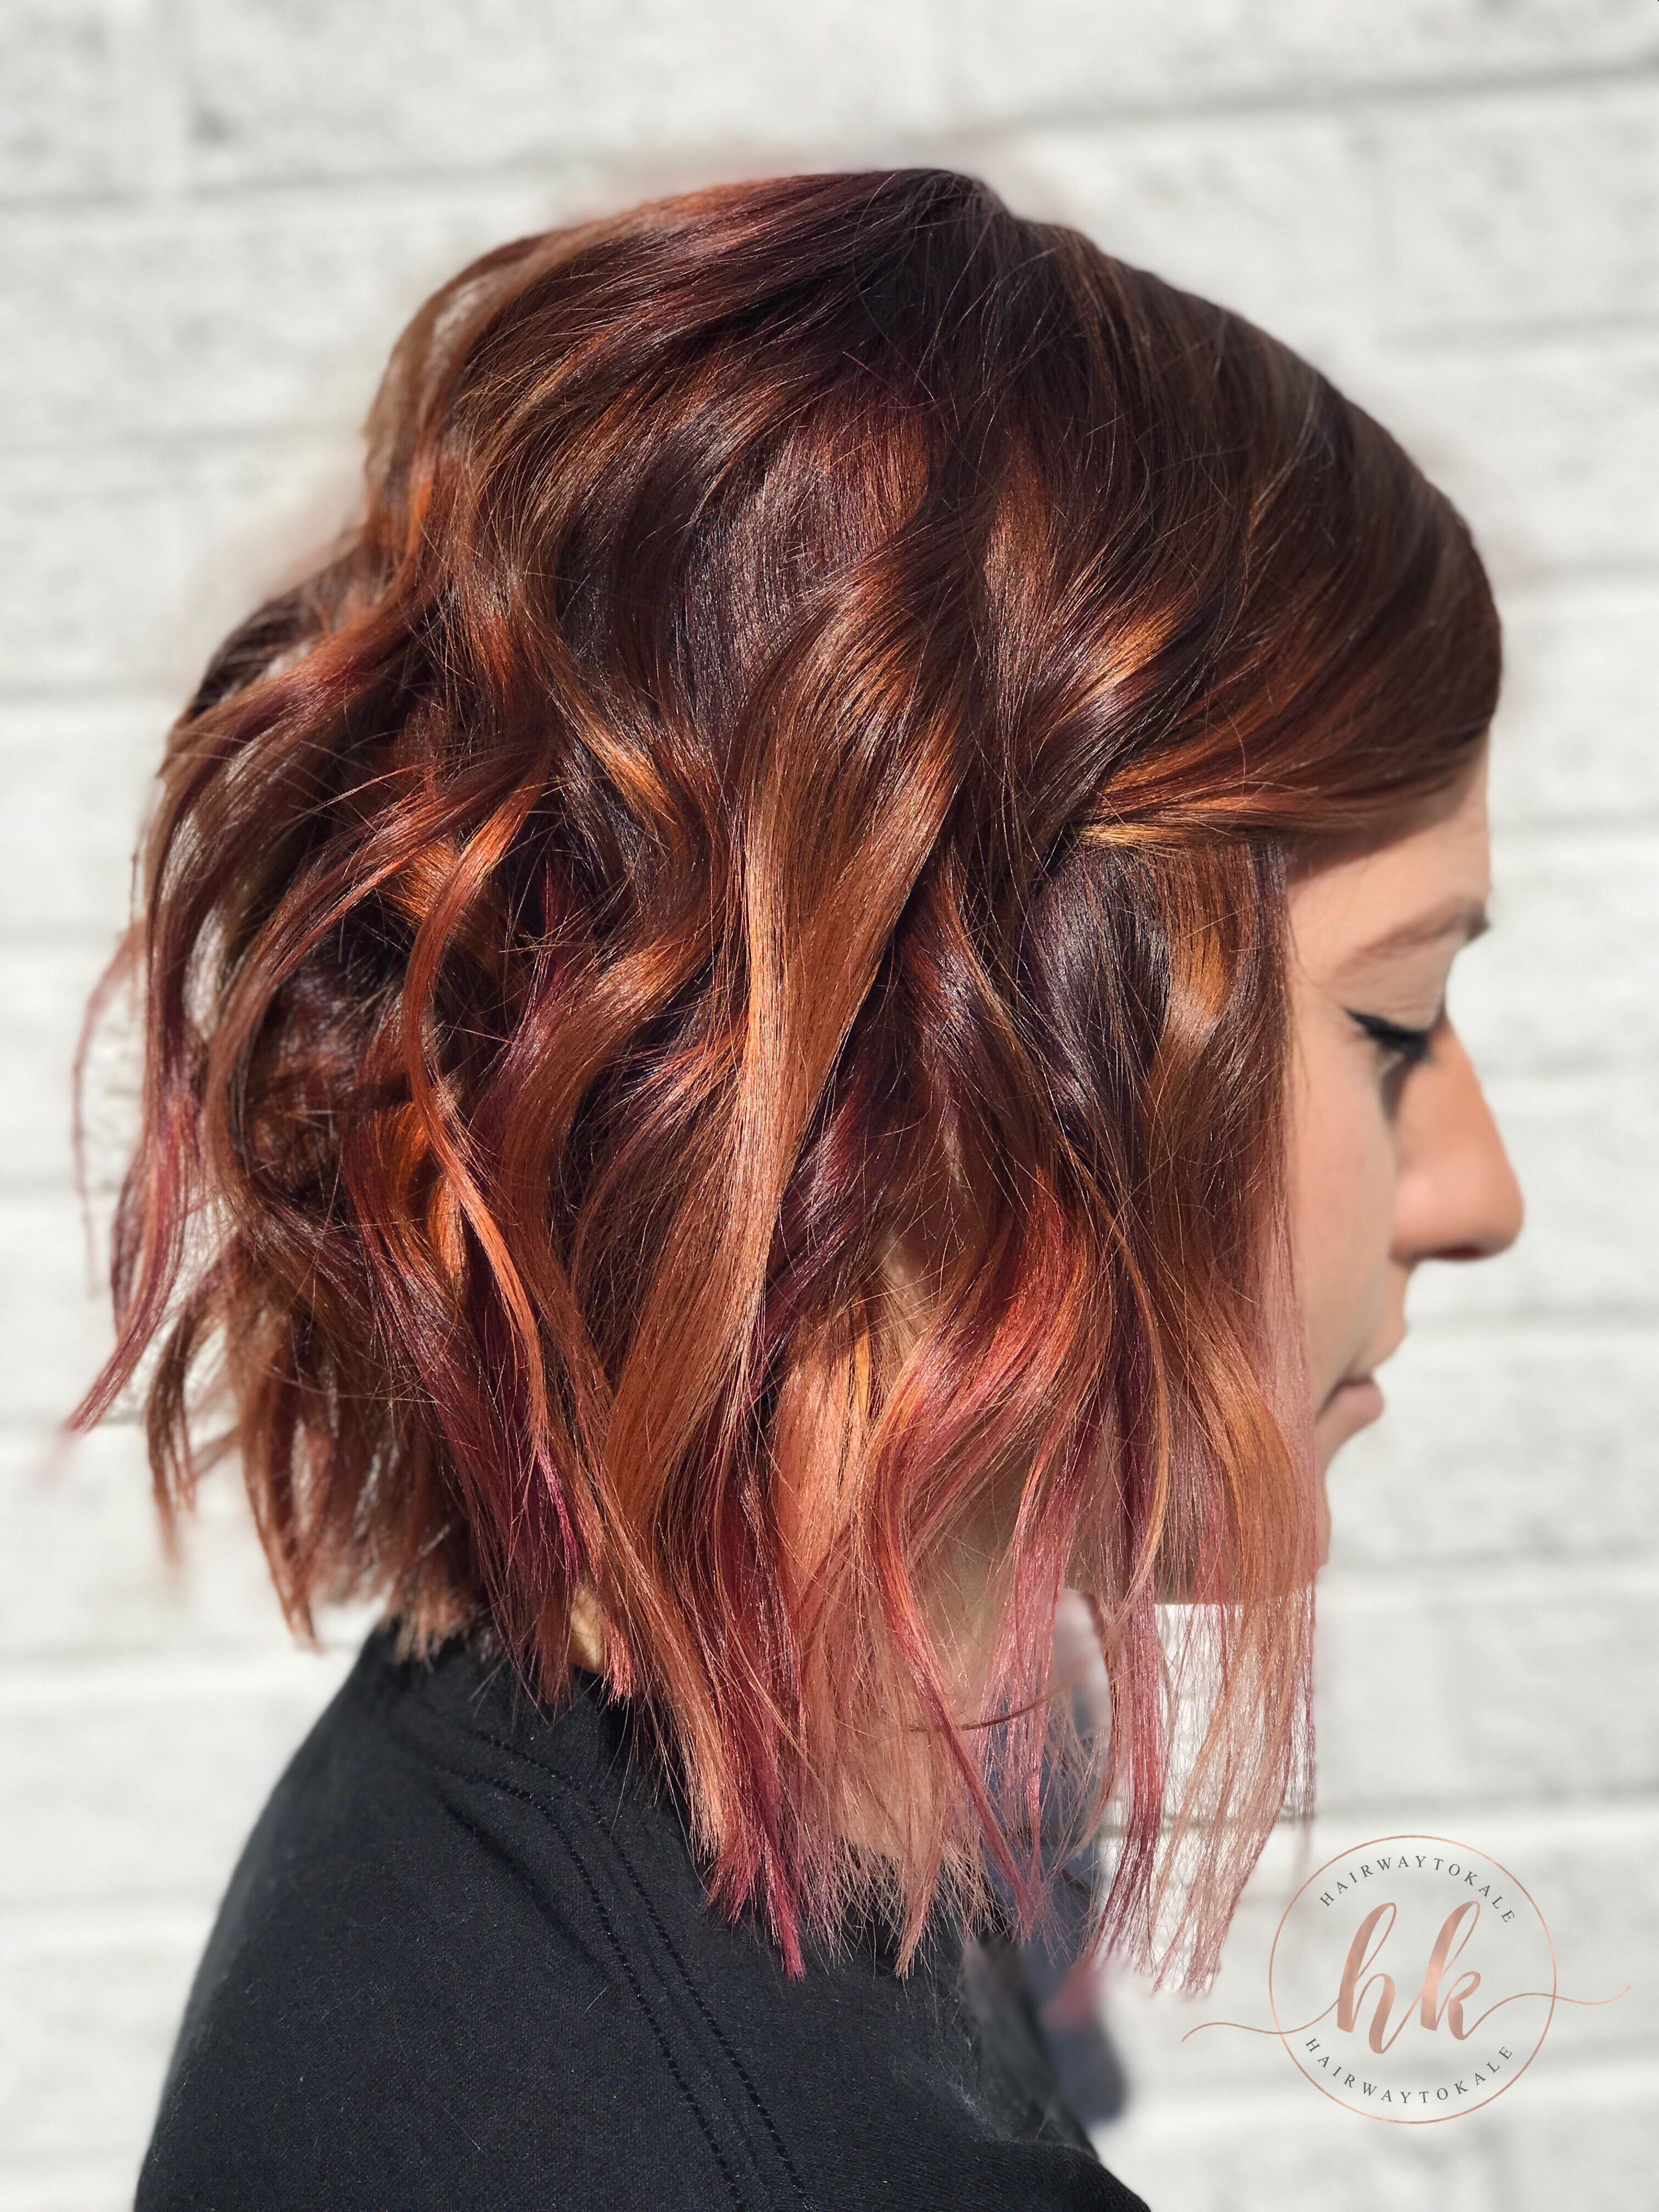 Peanut Butter And Jelly Hair